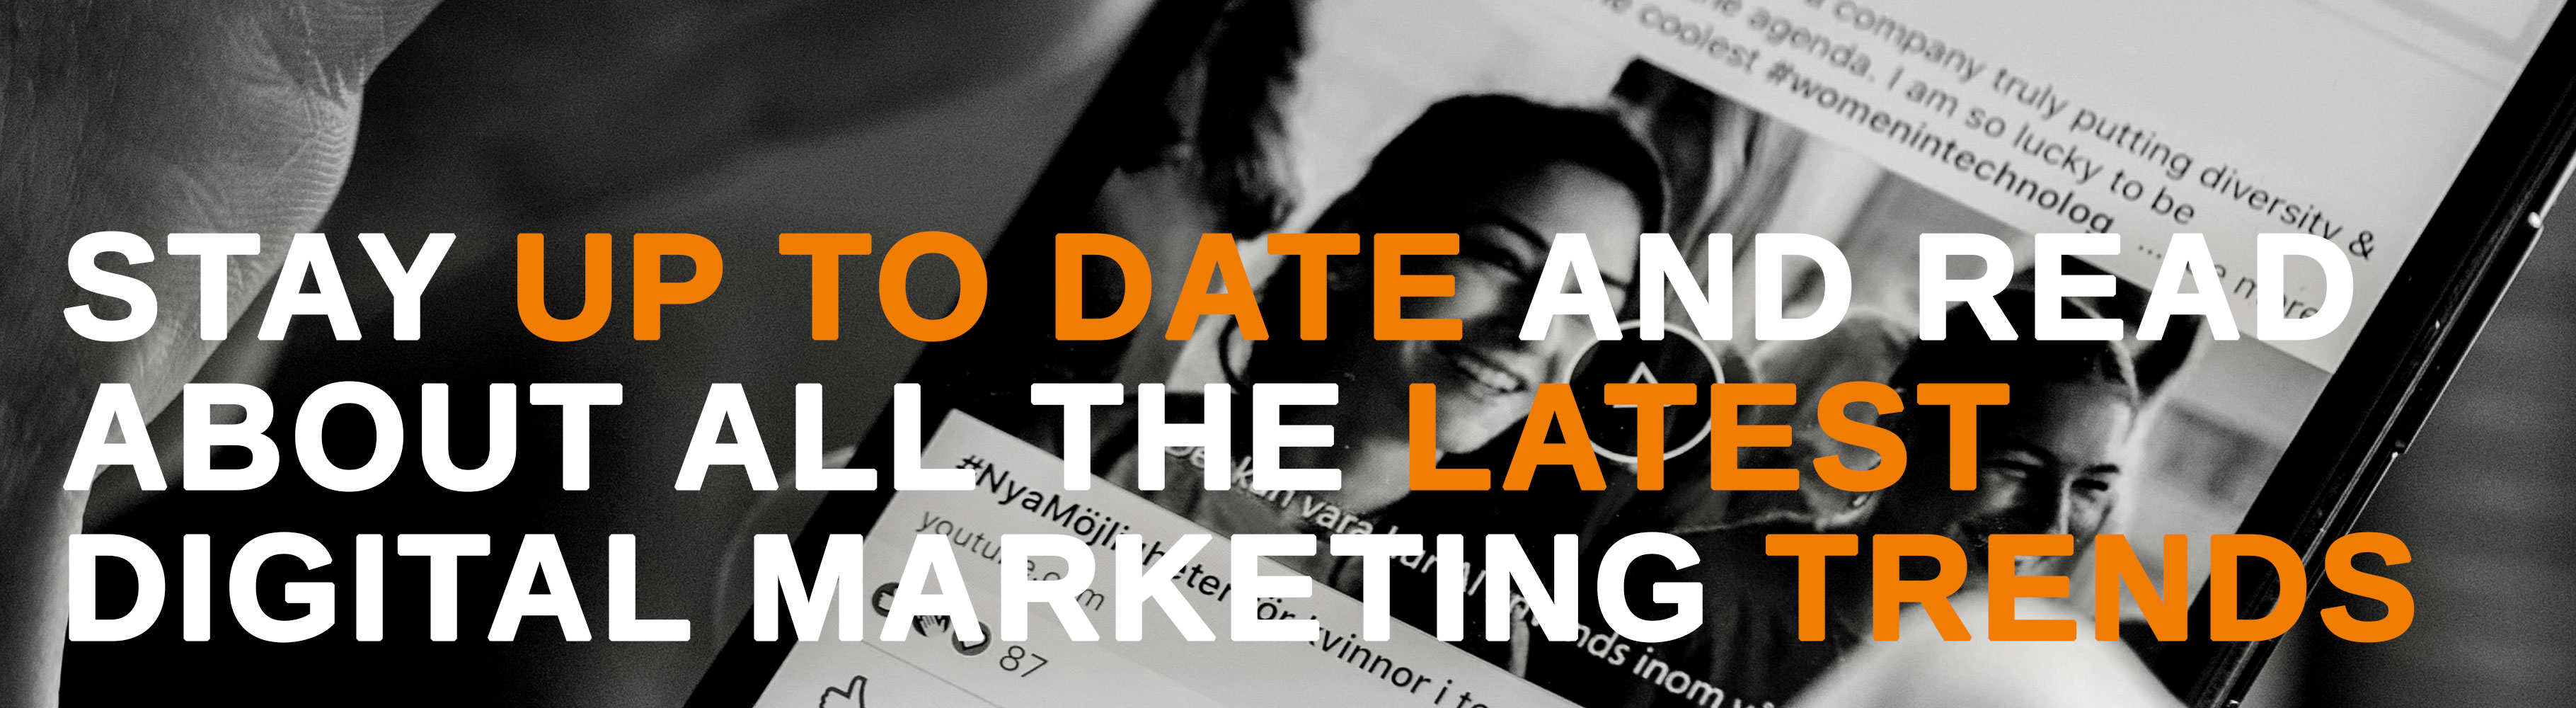 Stay up to date and read about all the latest digital marketing trends